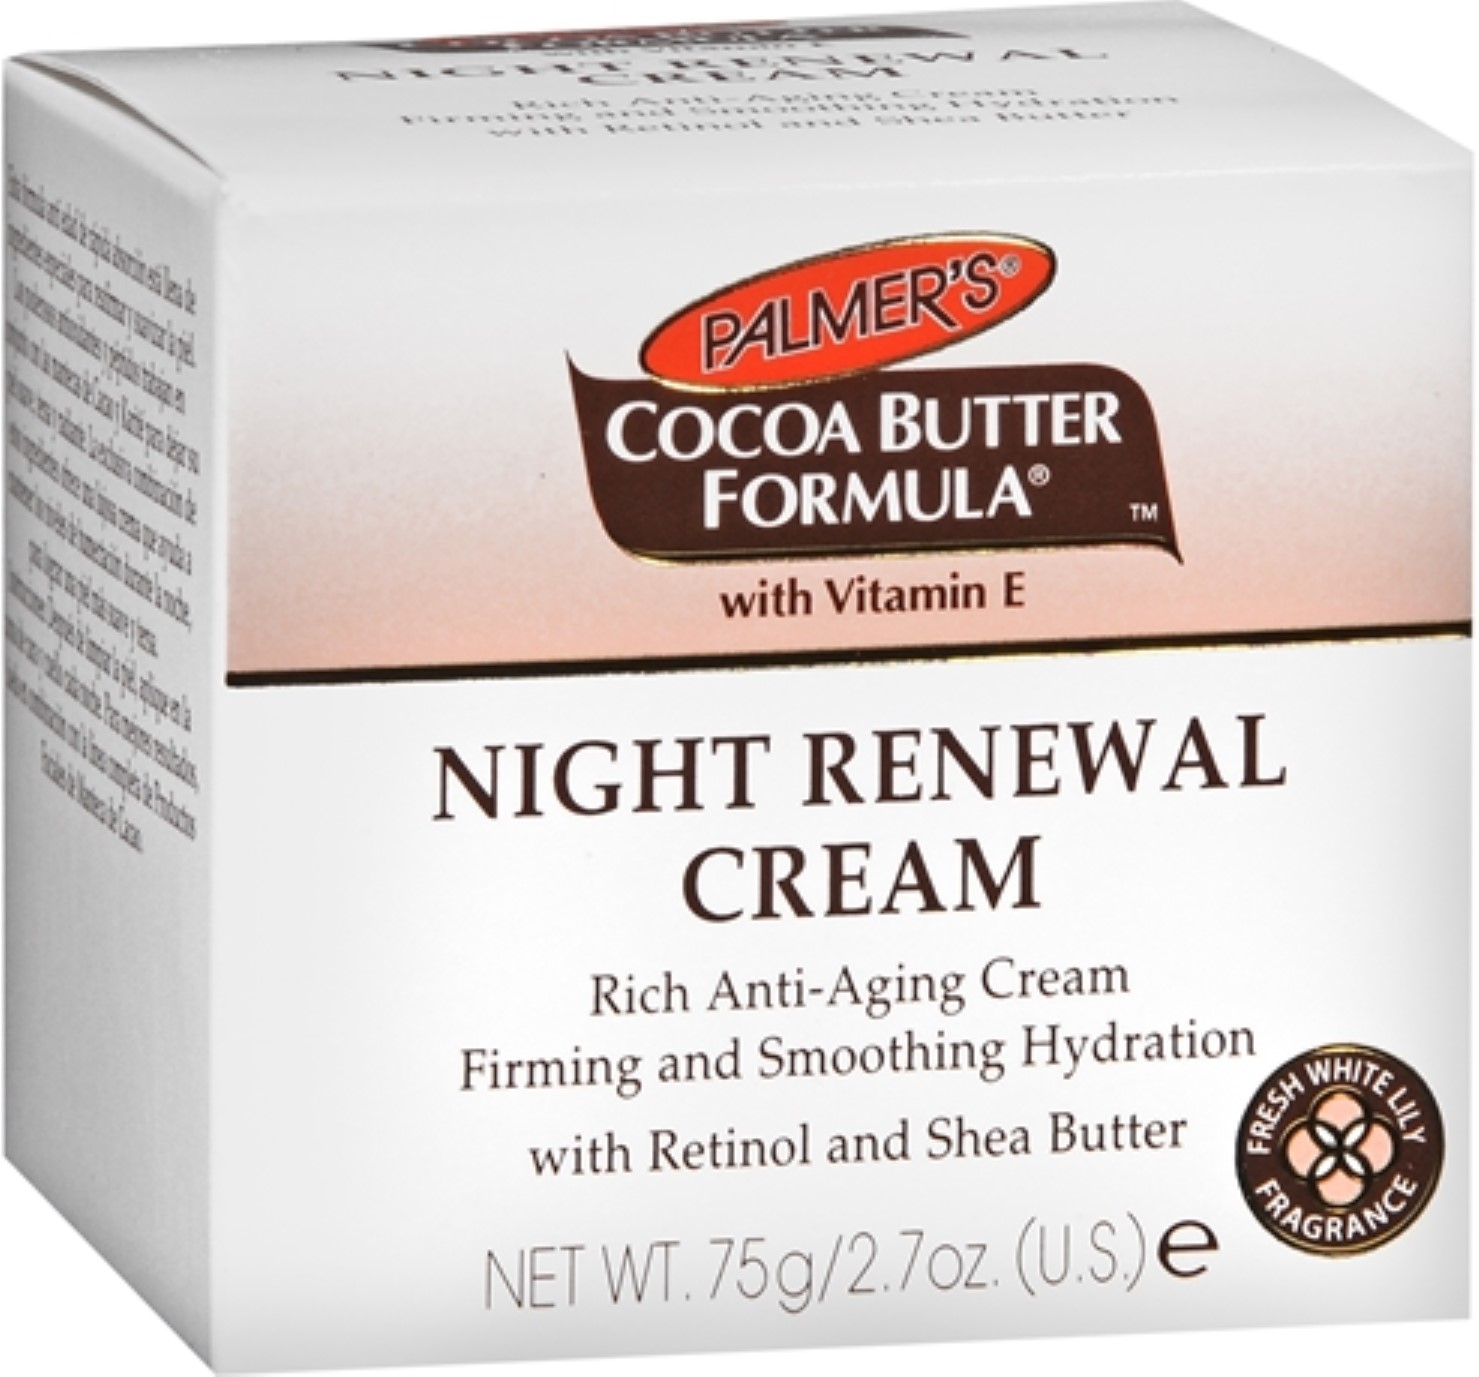 Palmer's Cocoa Butter Formula Night Renewal Cream 2.70 oz (Pack of 4)